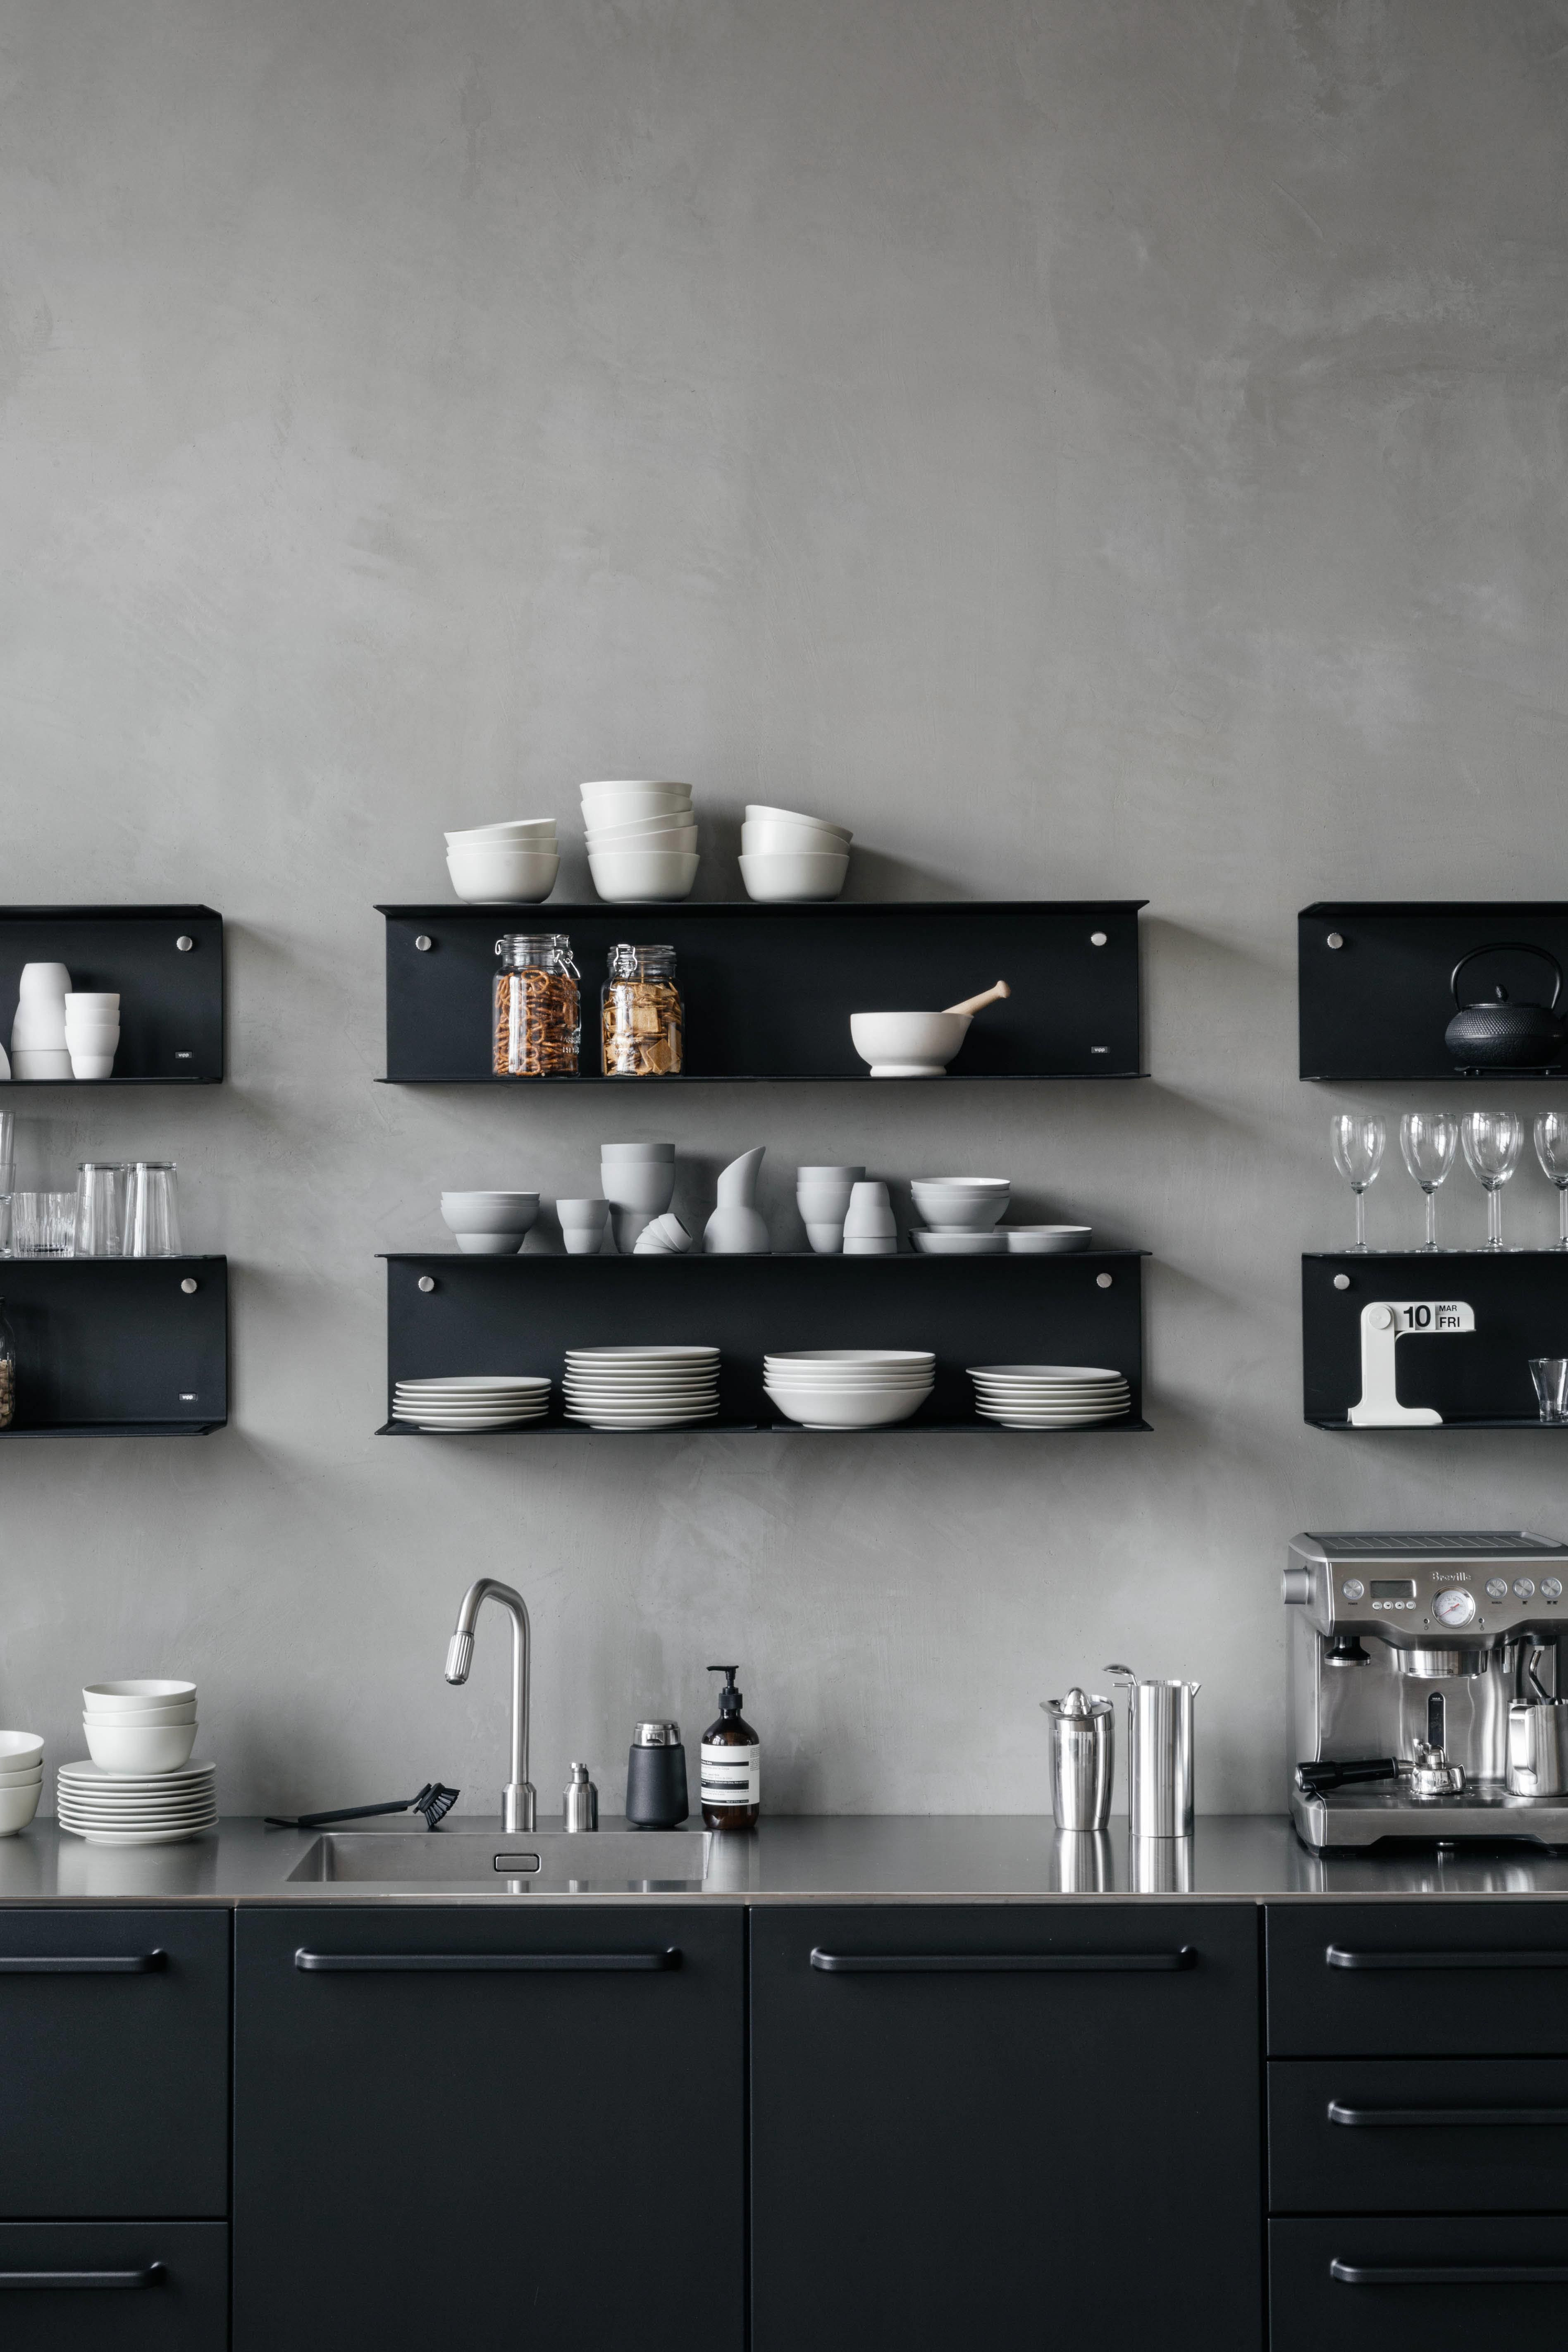 Black Modular Kitchen From Vipp With Matching Shelves On Conrete